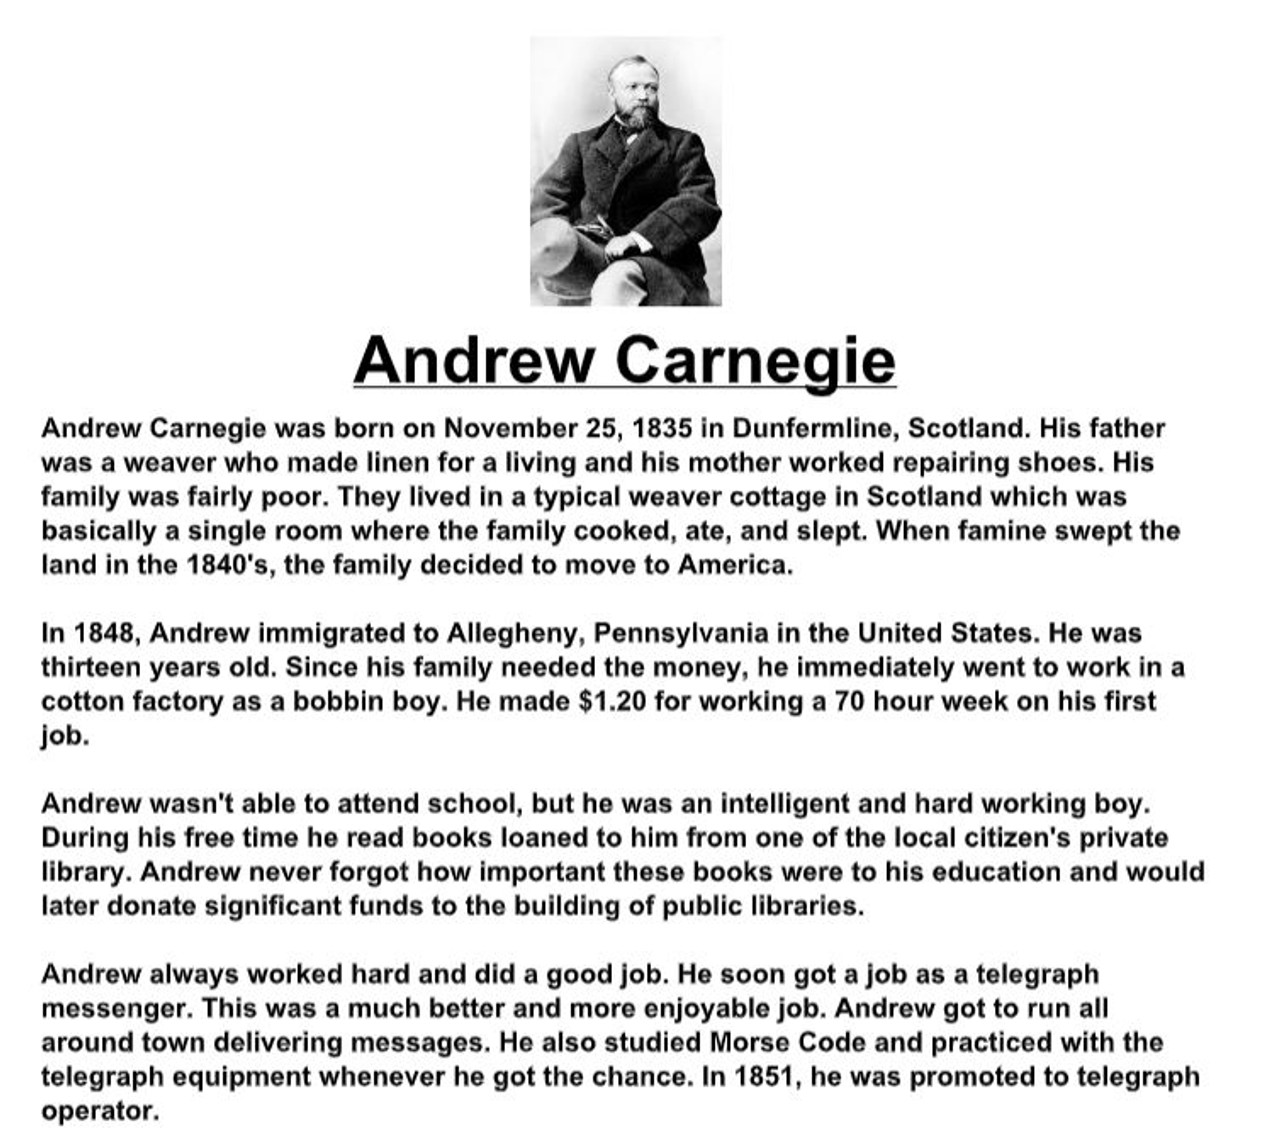 Andrew Carnegie Biography and Assignment